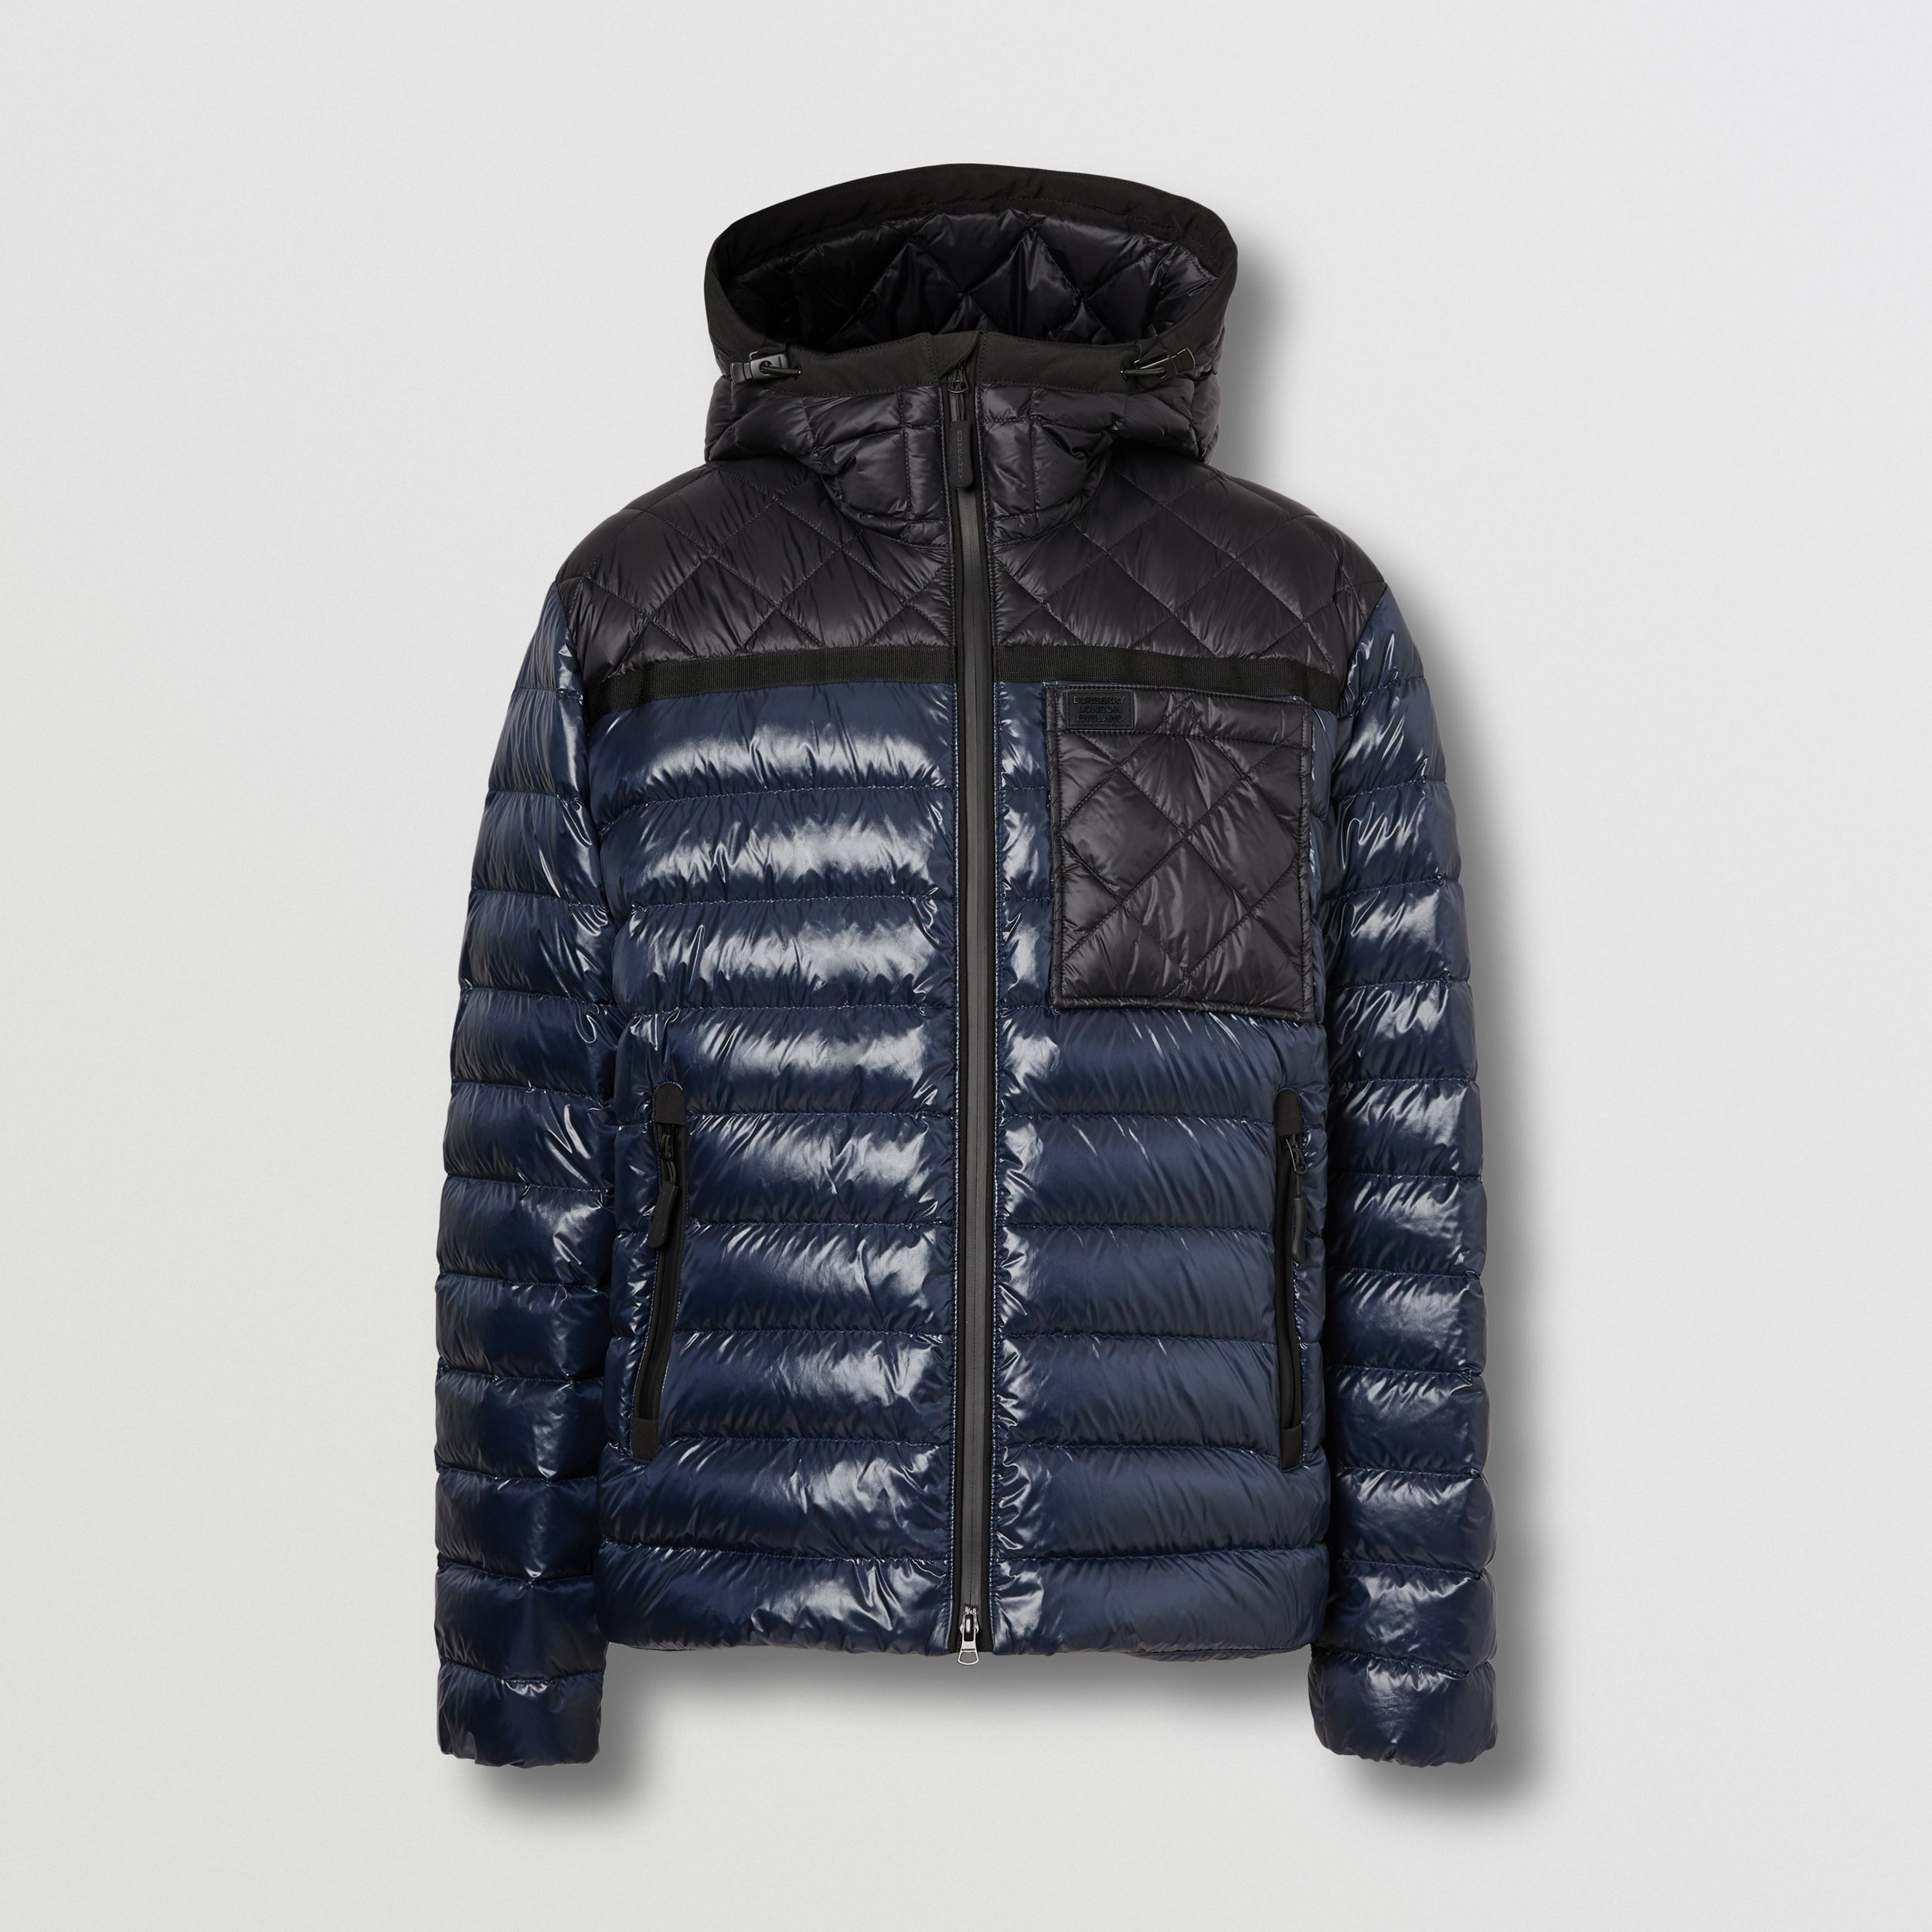 Diamond Quilted Panel Hooded Puffer Jacket in Midnight - Men | Burberry - 4